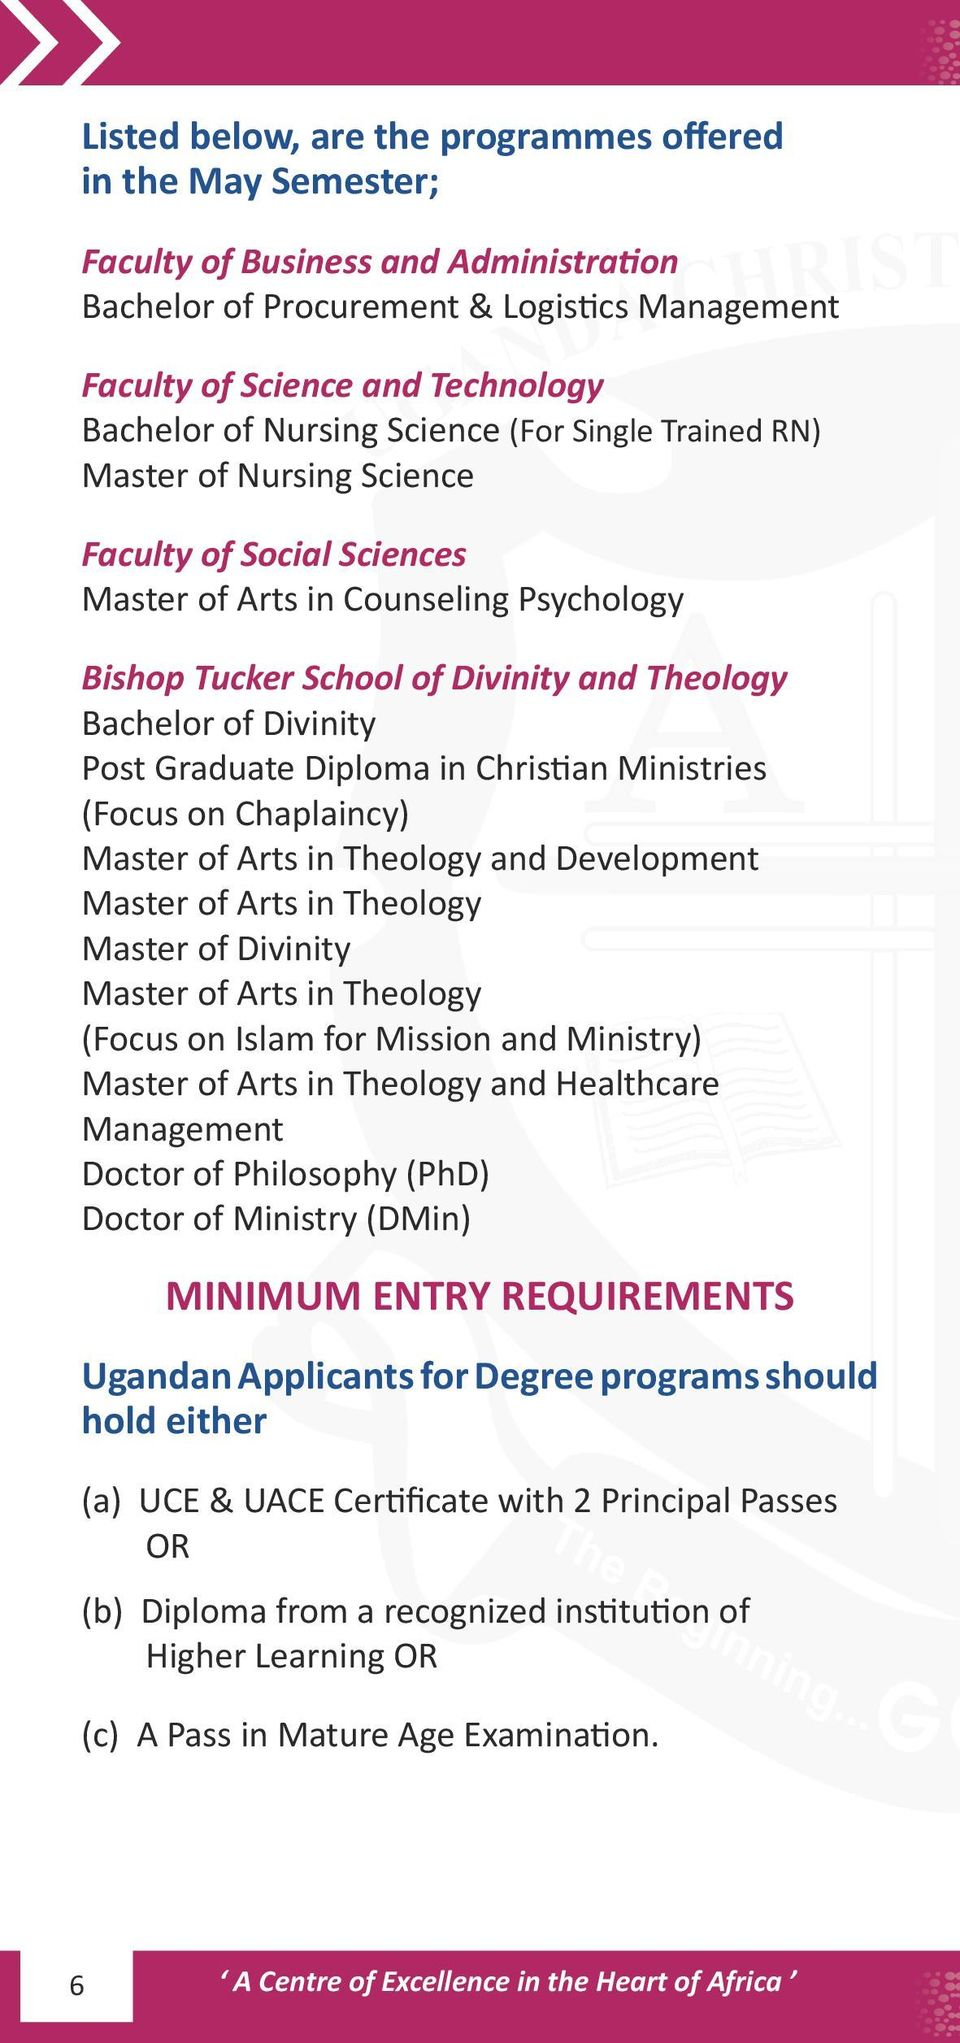 Post Graduate Diploma in Christian Ministries (Focus on Chaplaincy) Master of Arts in Theology and Development Master of Arts in Theology Master of Divinity Master of Arts in Theology (Focus on Islam